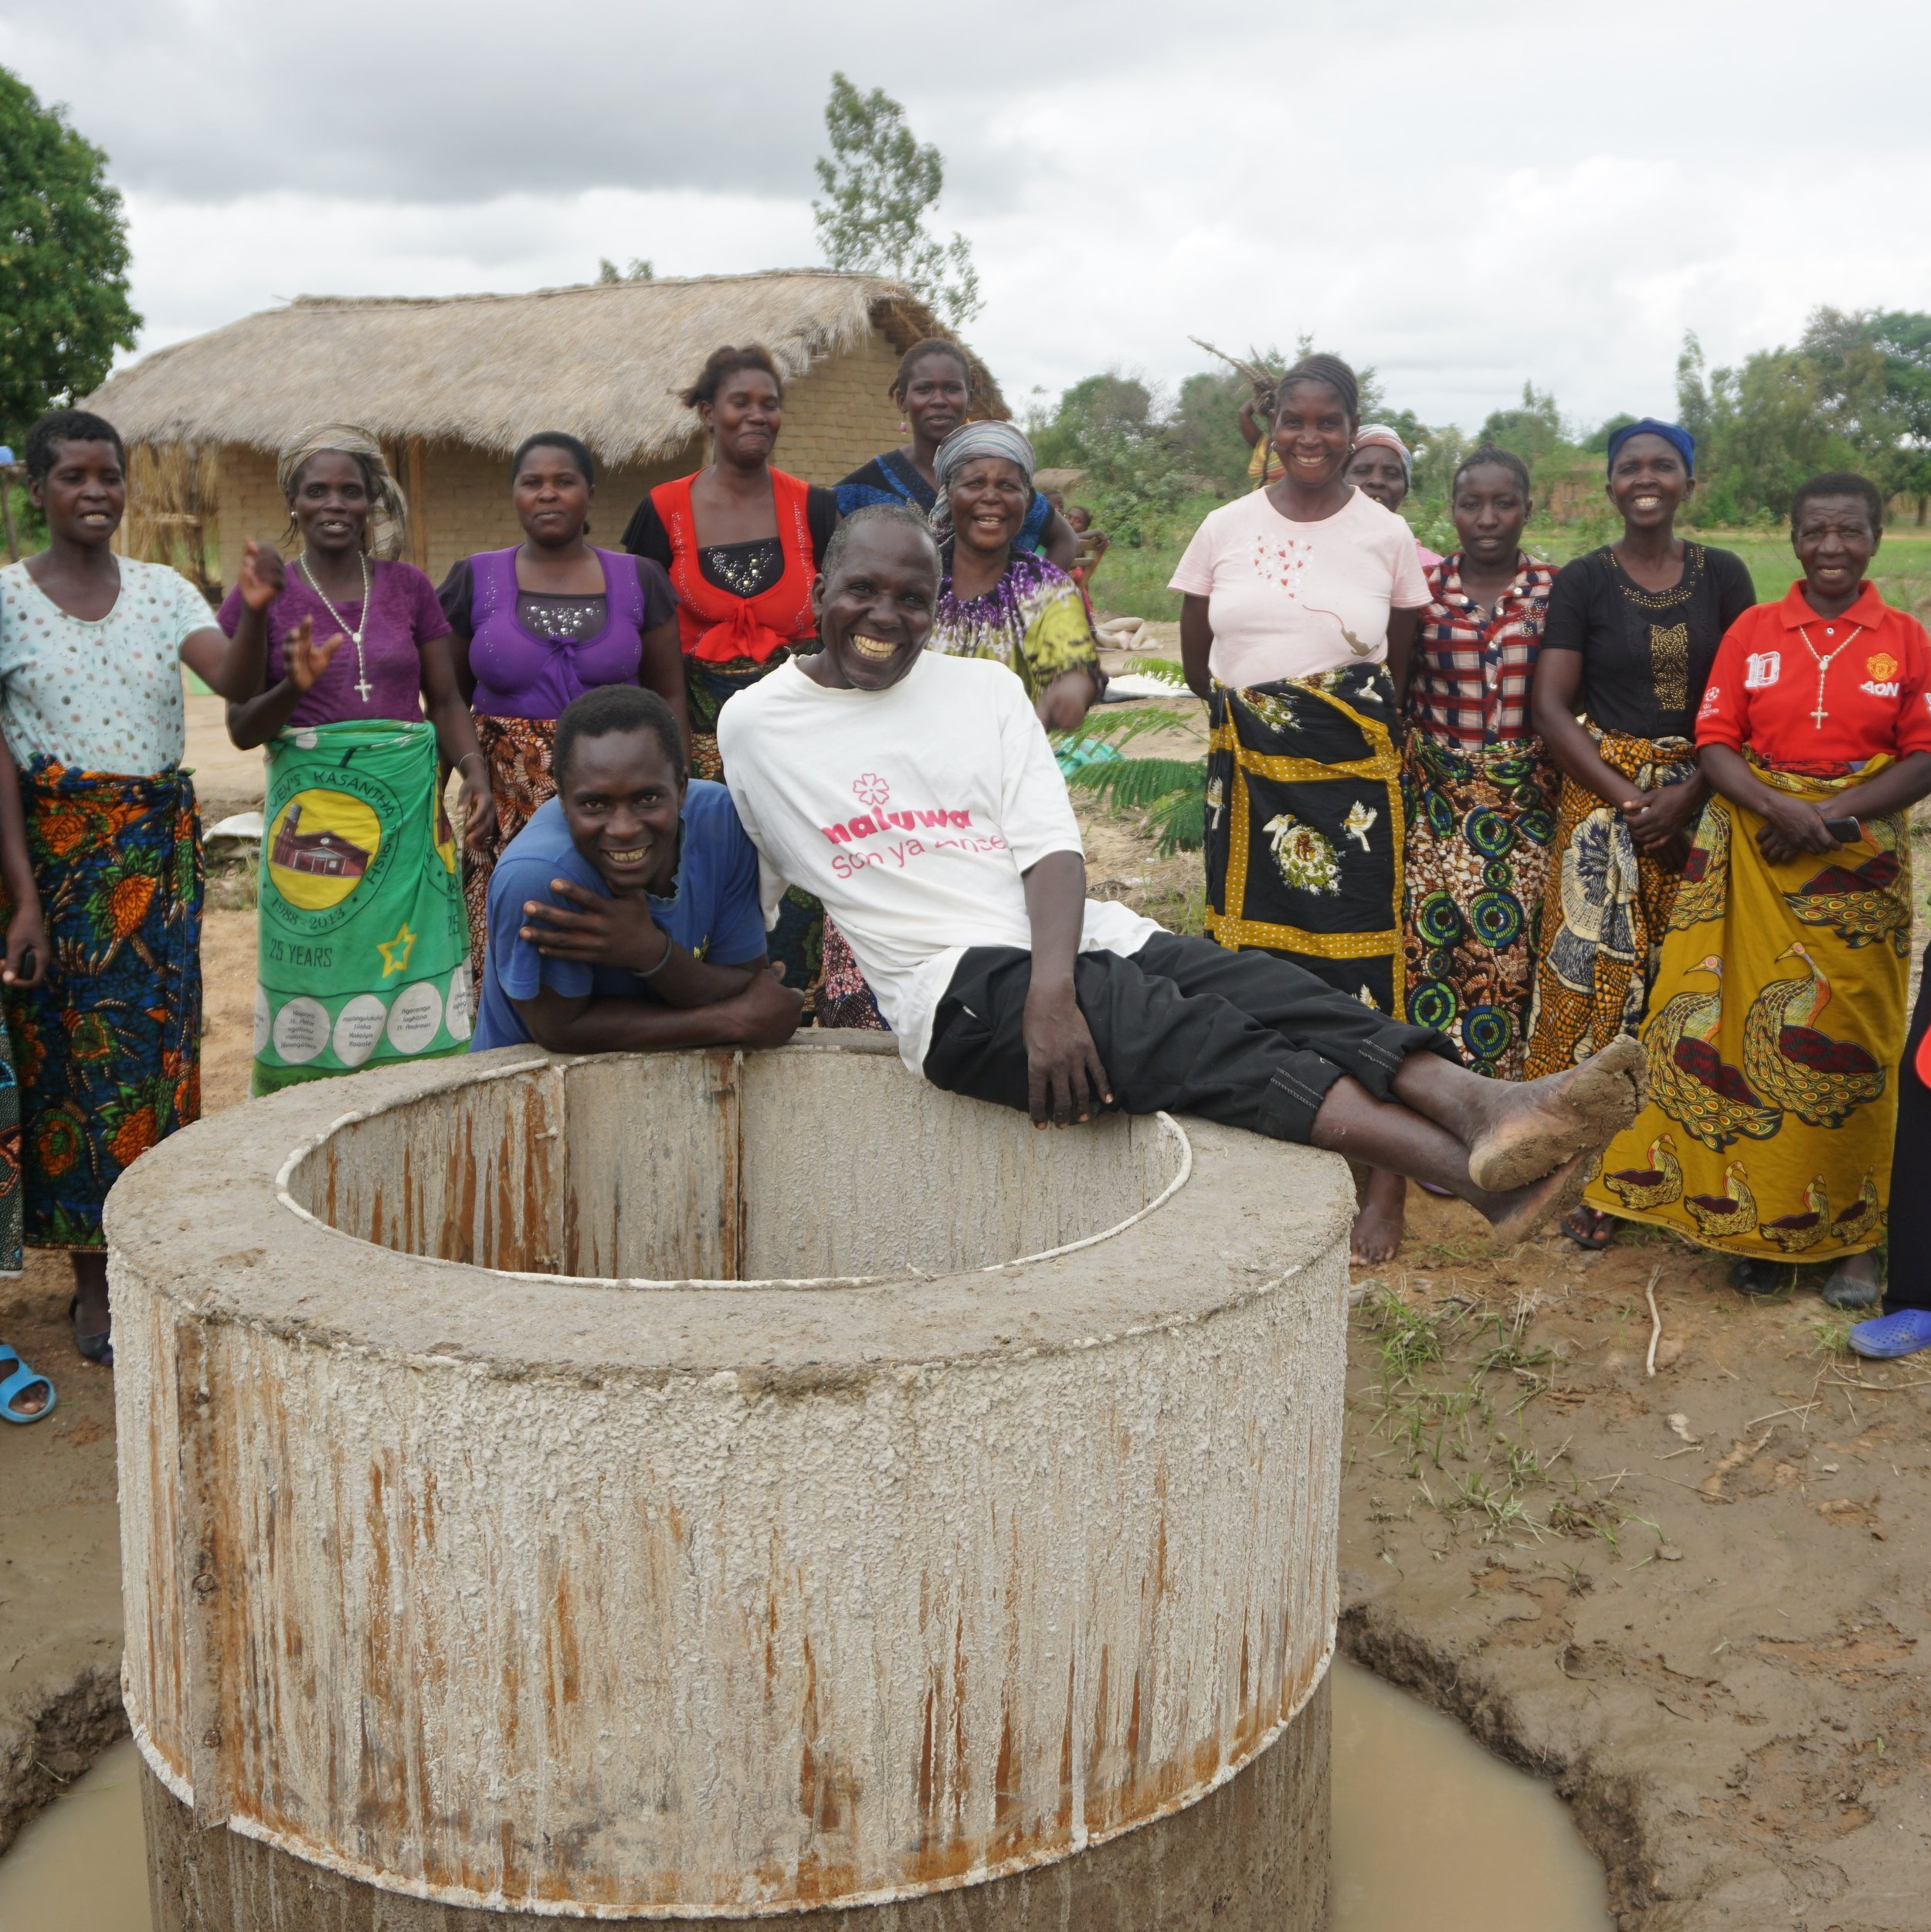 Water Stewardship Malawi - Water Stewardship Malawi responds to demand from major water users, government and citizens in Malawi for improved water security and resource governance. Read More →